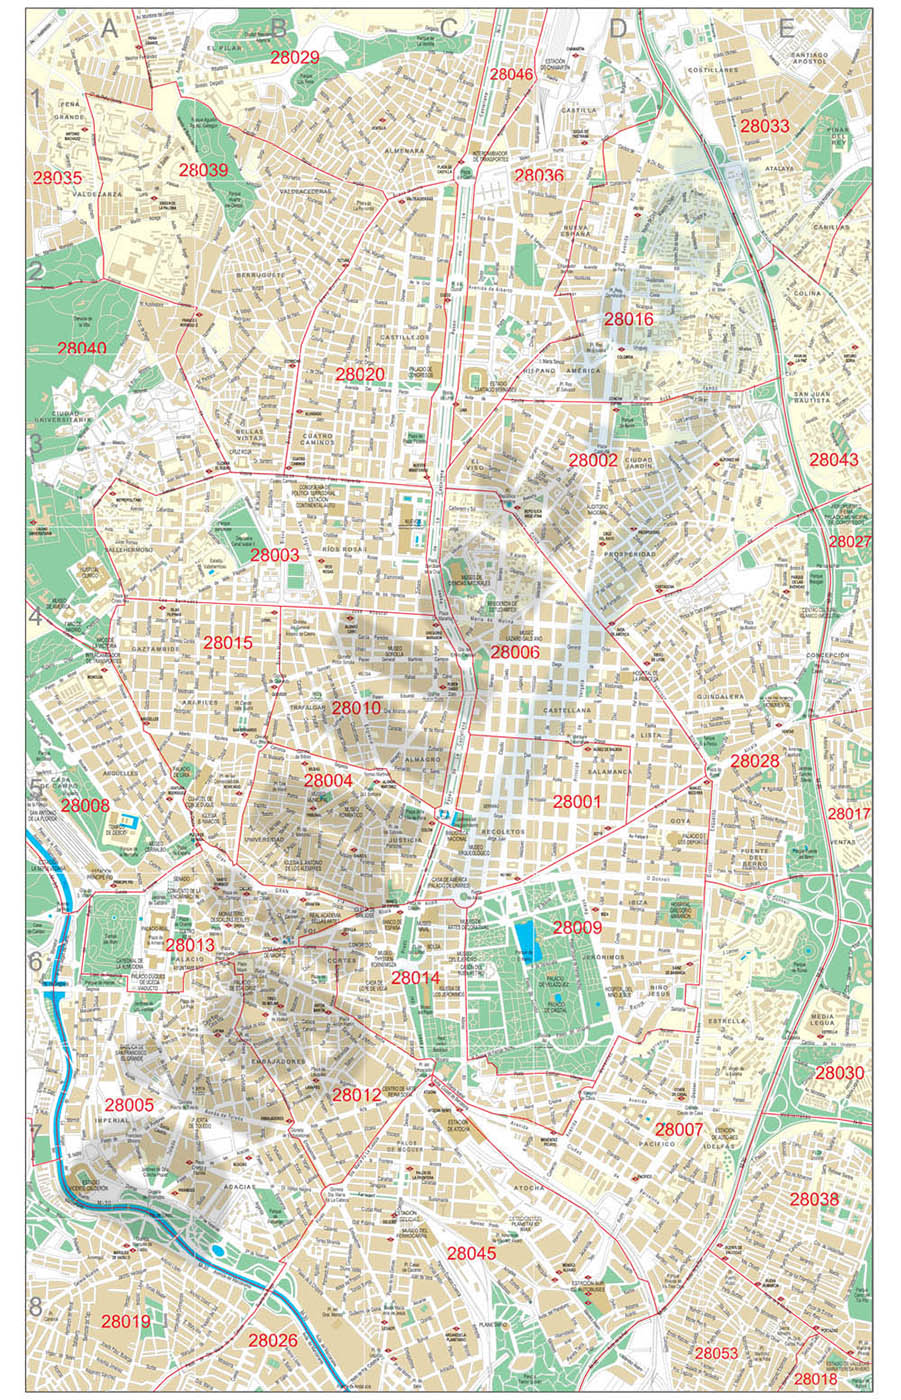 Madrid center city with postal districts